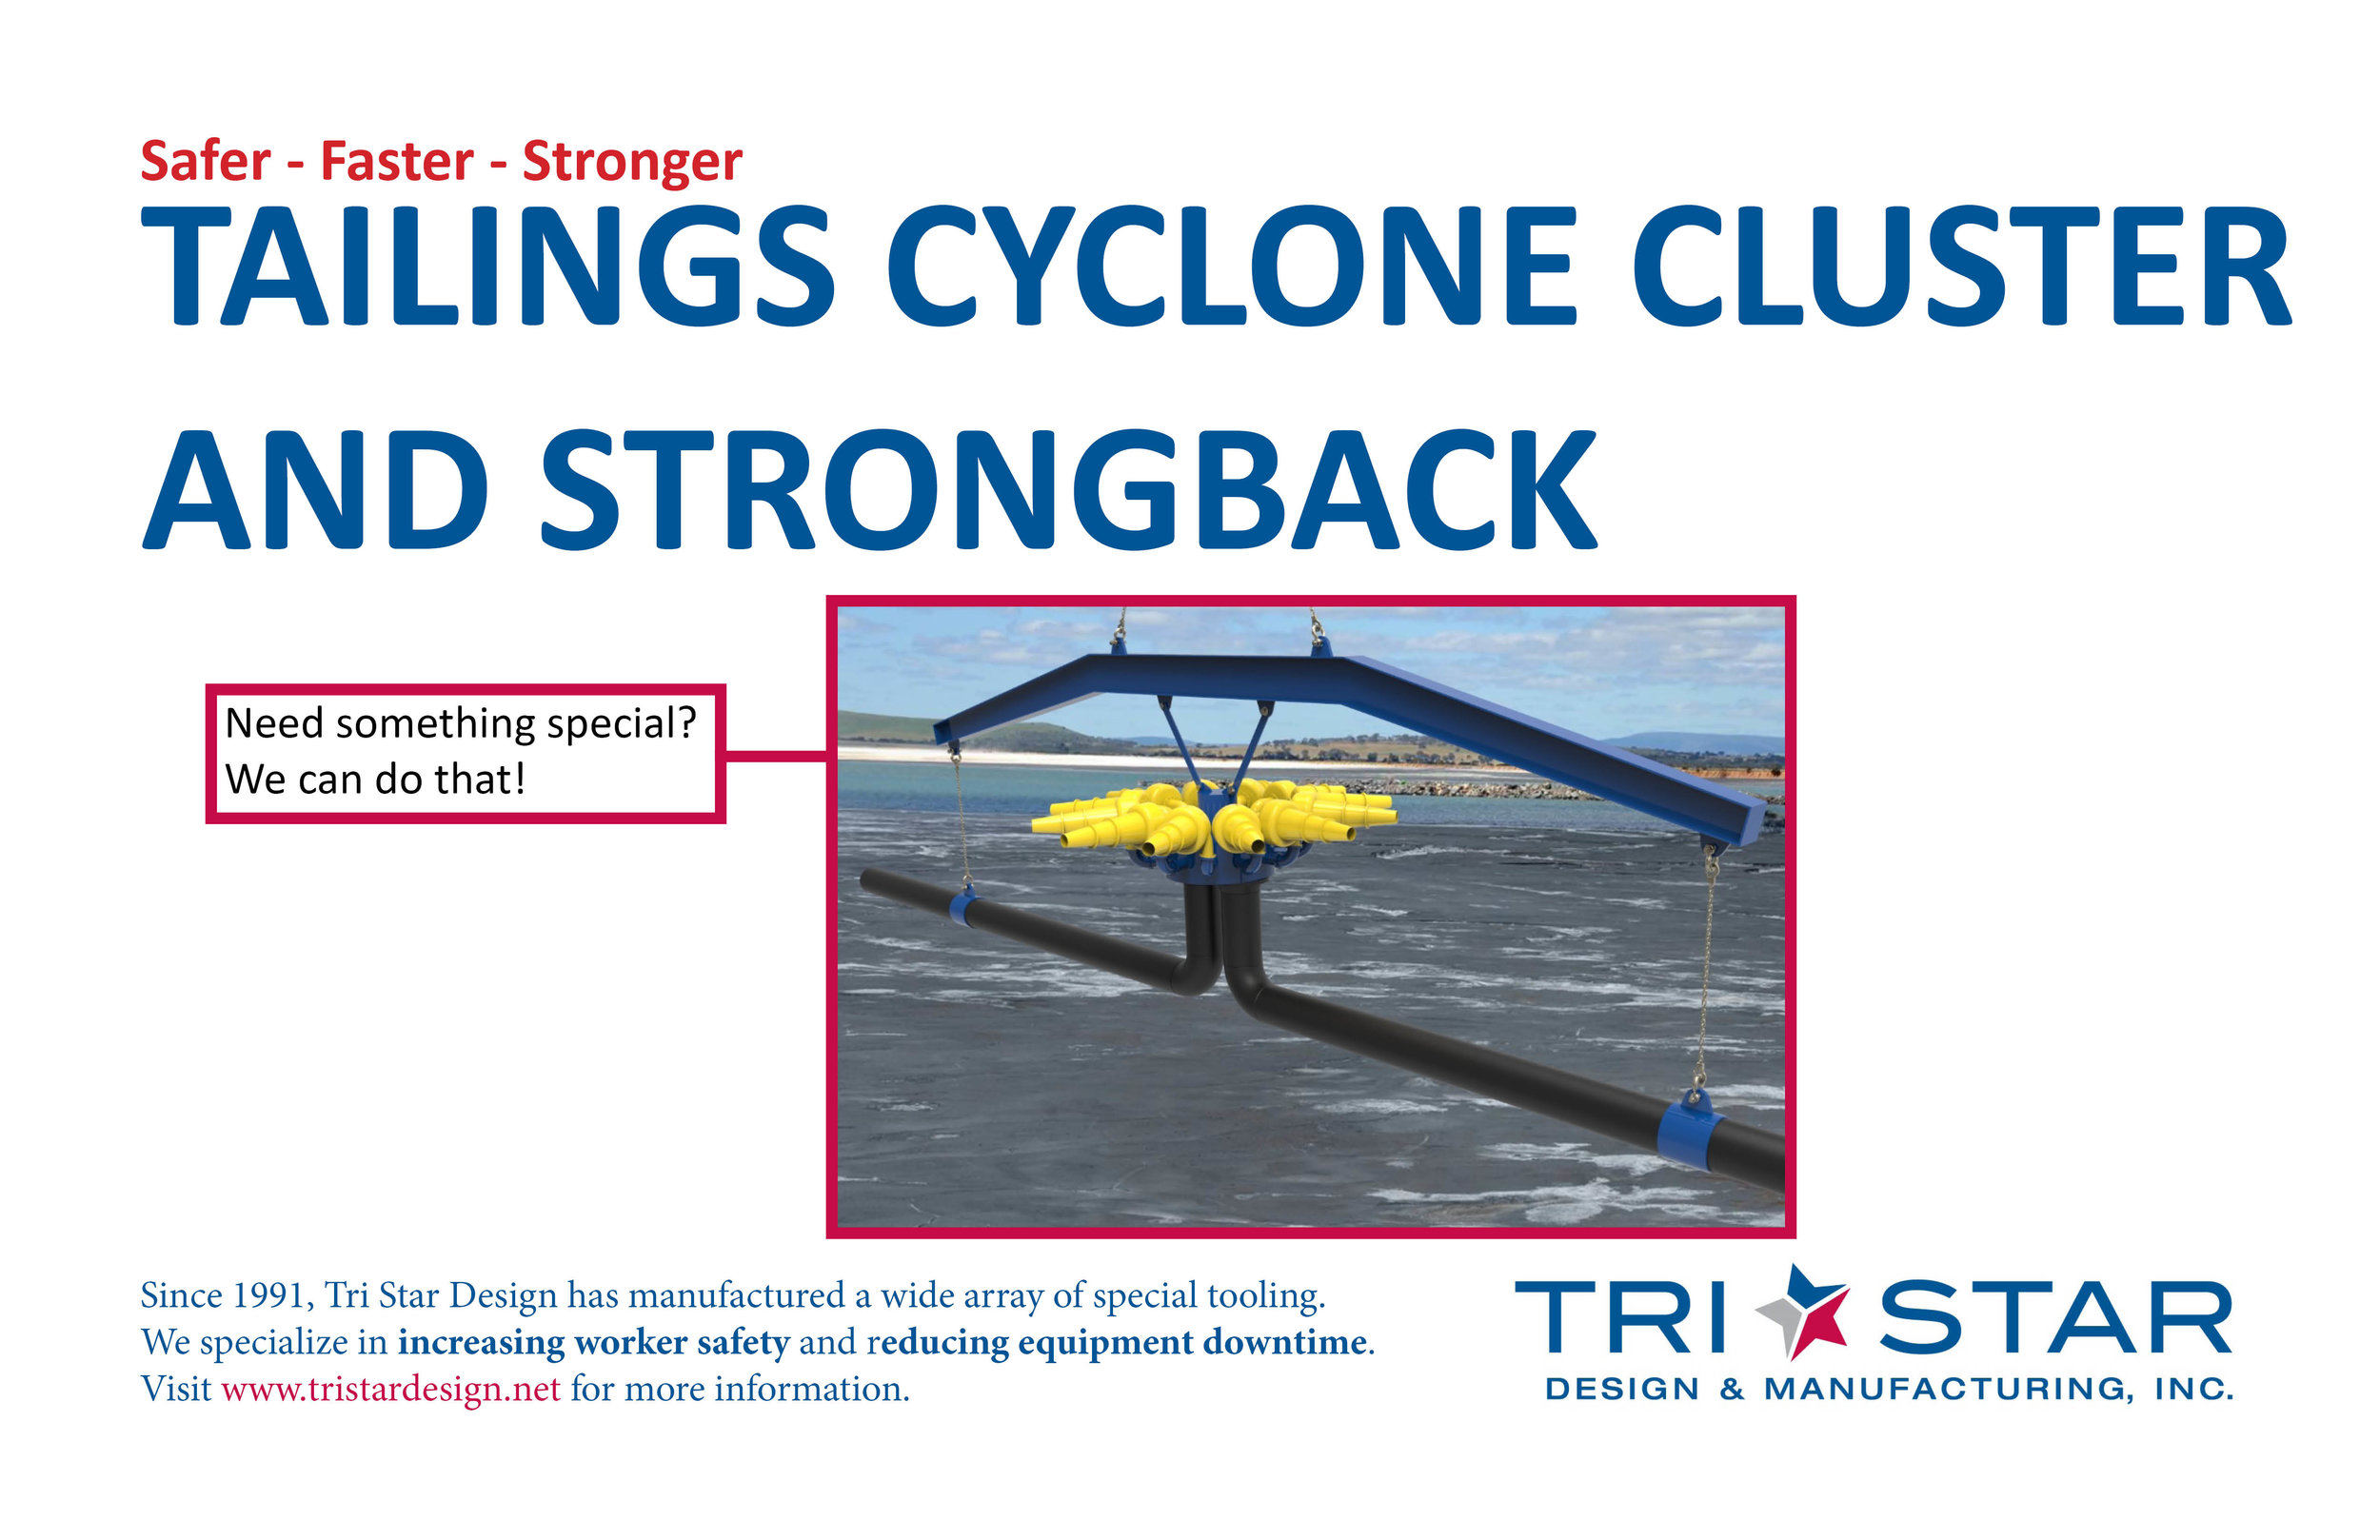 tailings cyclone cluster and strongback.jpg